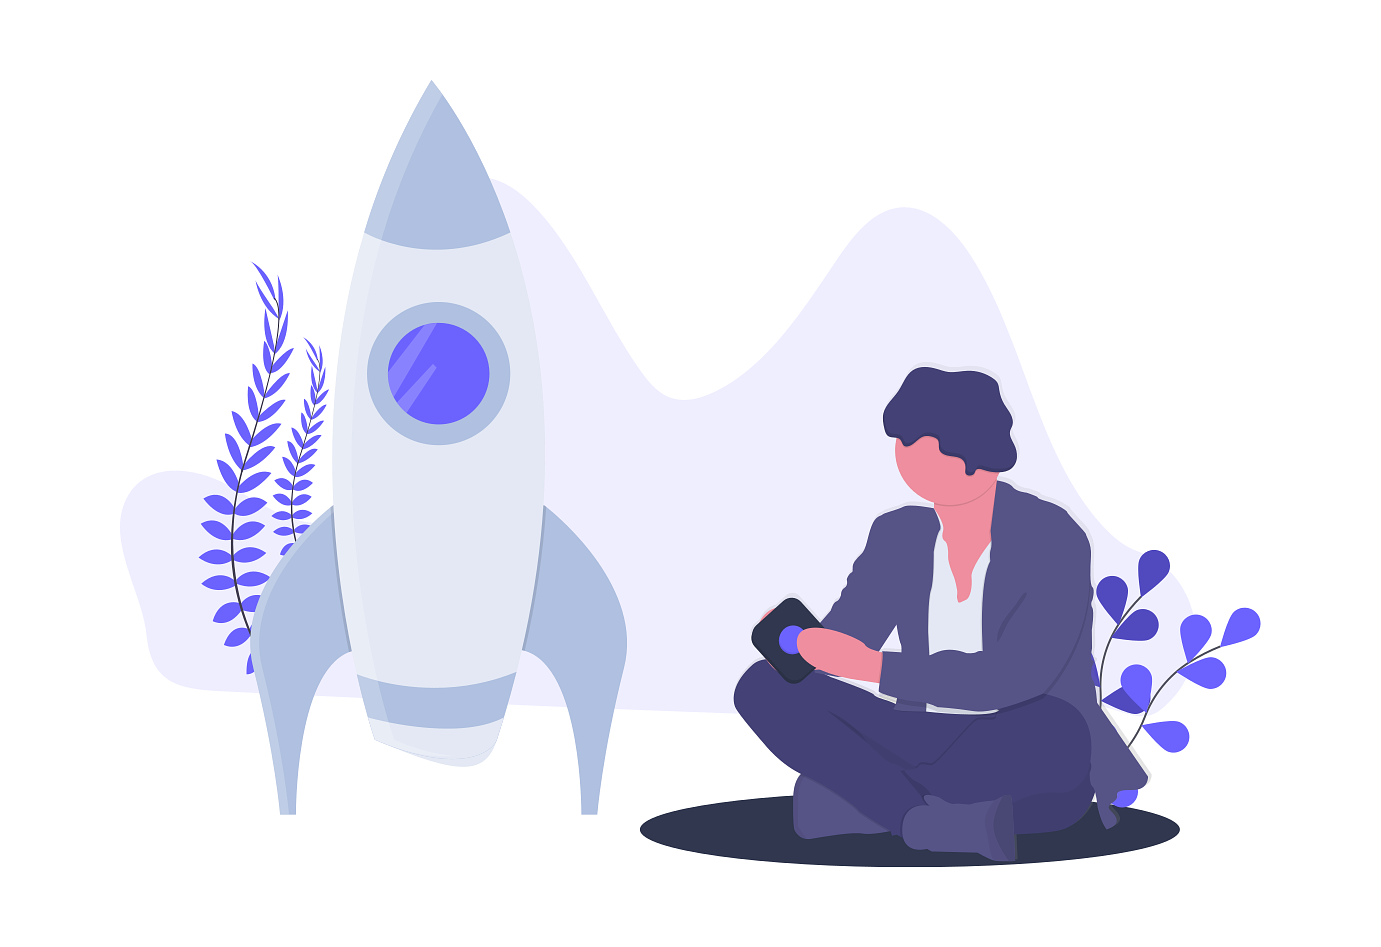 Illustration of a person about to launch a small rocket